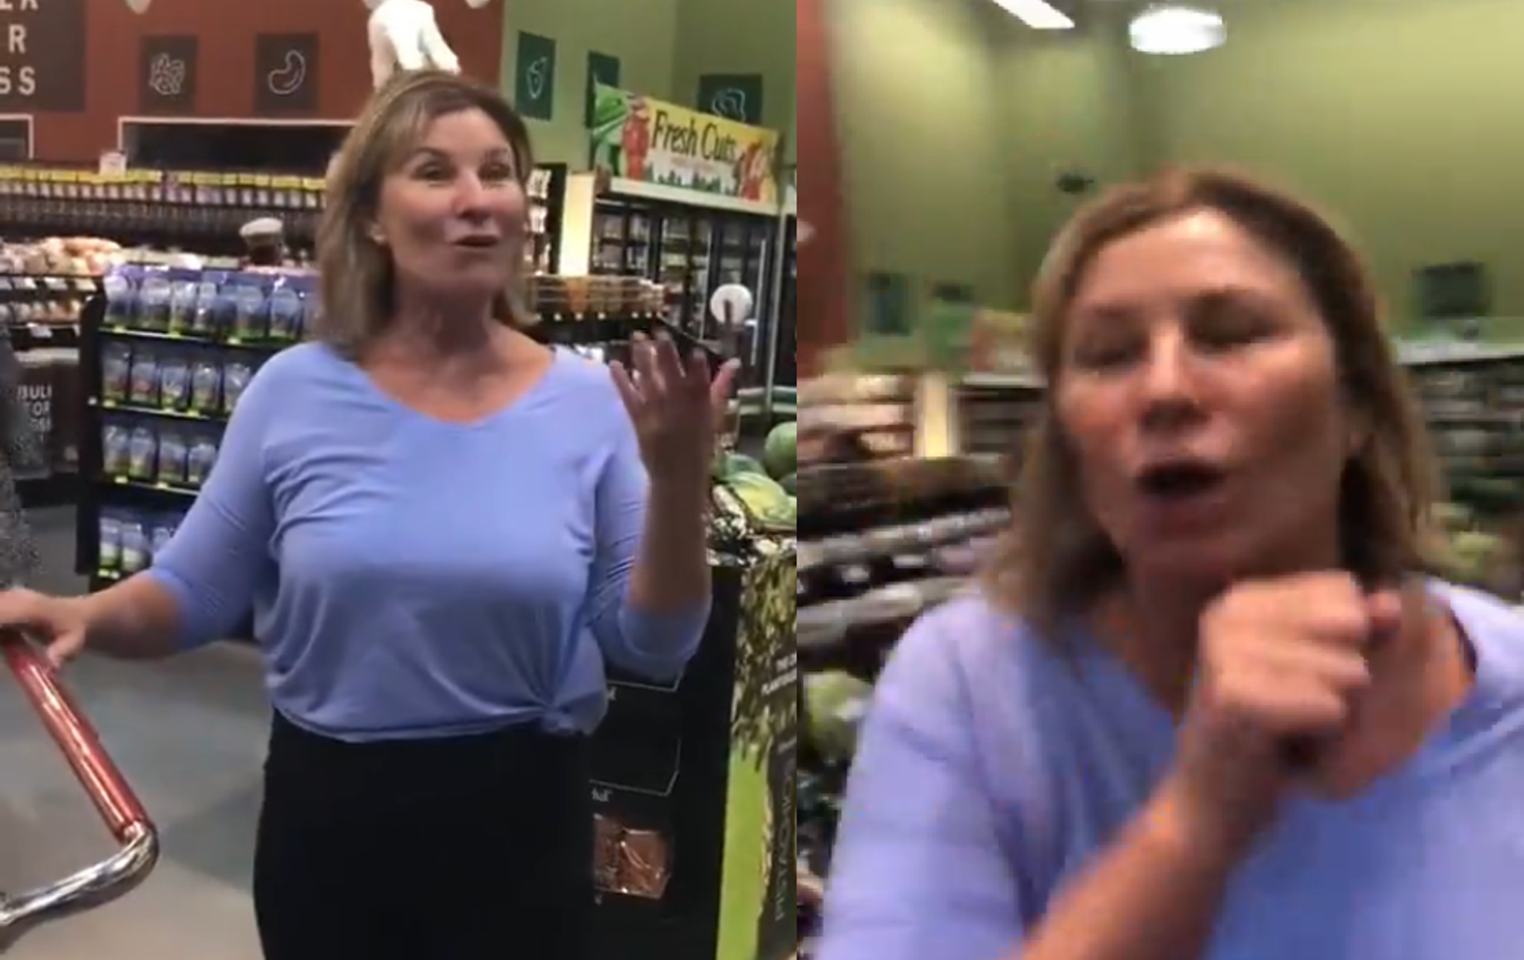 Scottsdale Woman Goes Viral For Coughing On Masked Shoppers At Nebraska Grocery Store